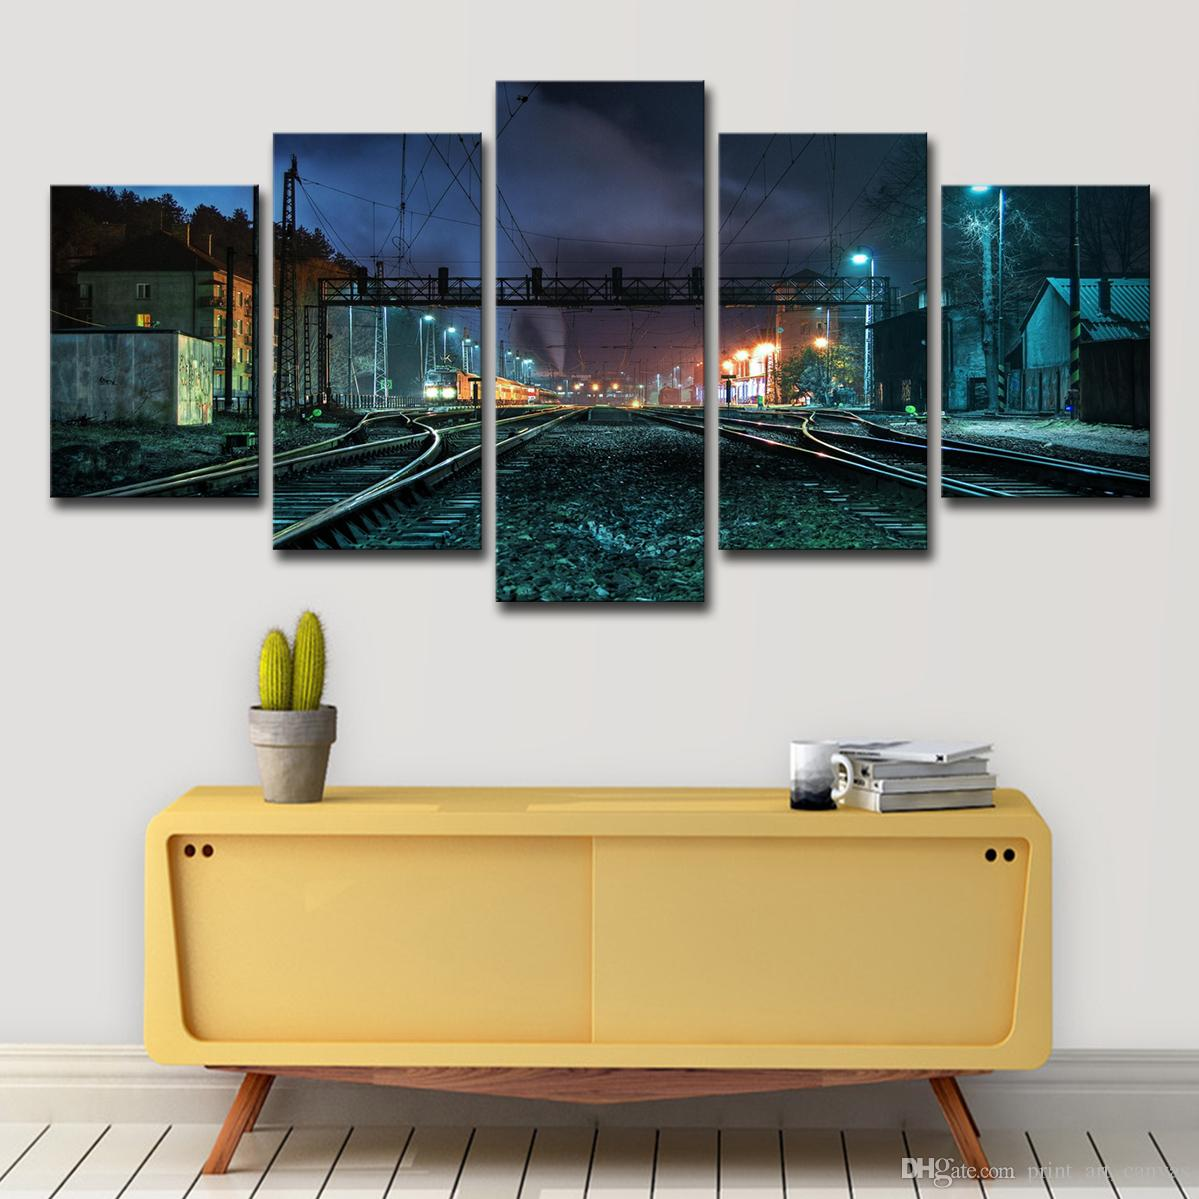 2019 Canvas Painting Wall Art Home Decor Beautiful Rustic Railroad Tracks Pictures For Living Room Modular Hd Prints Poster From Print Art Canvas